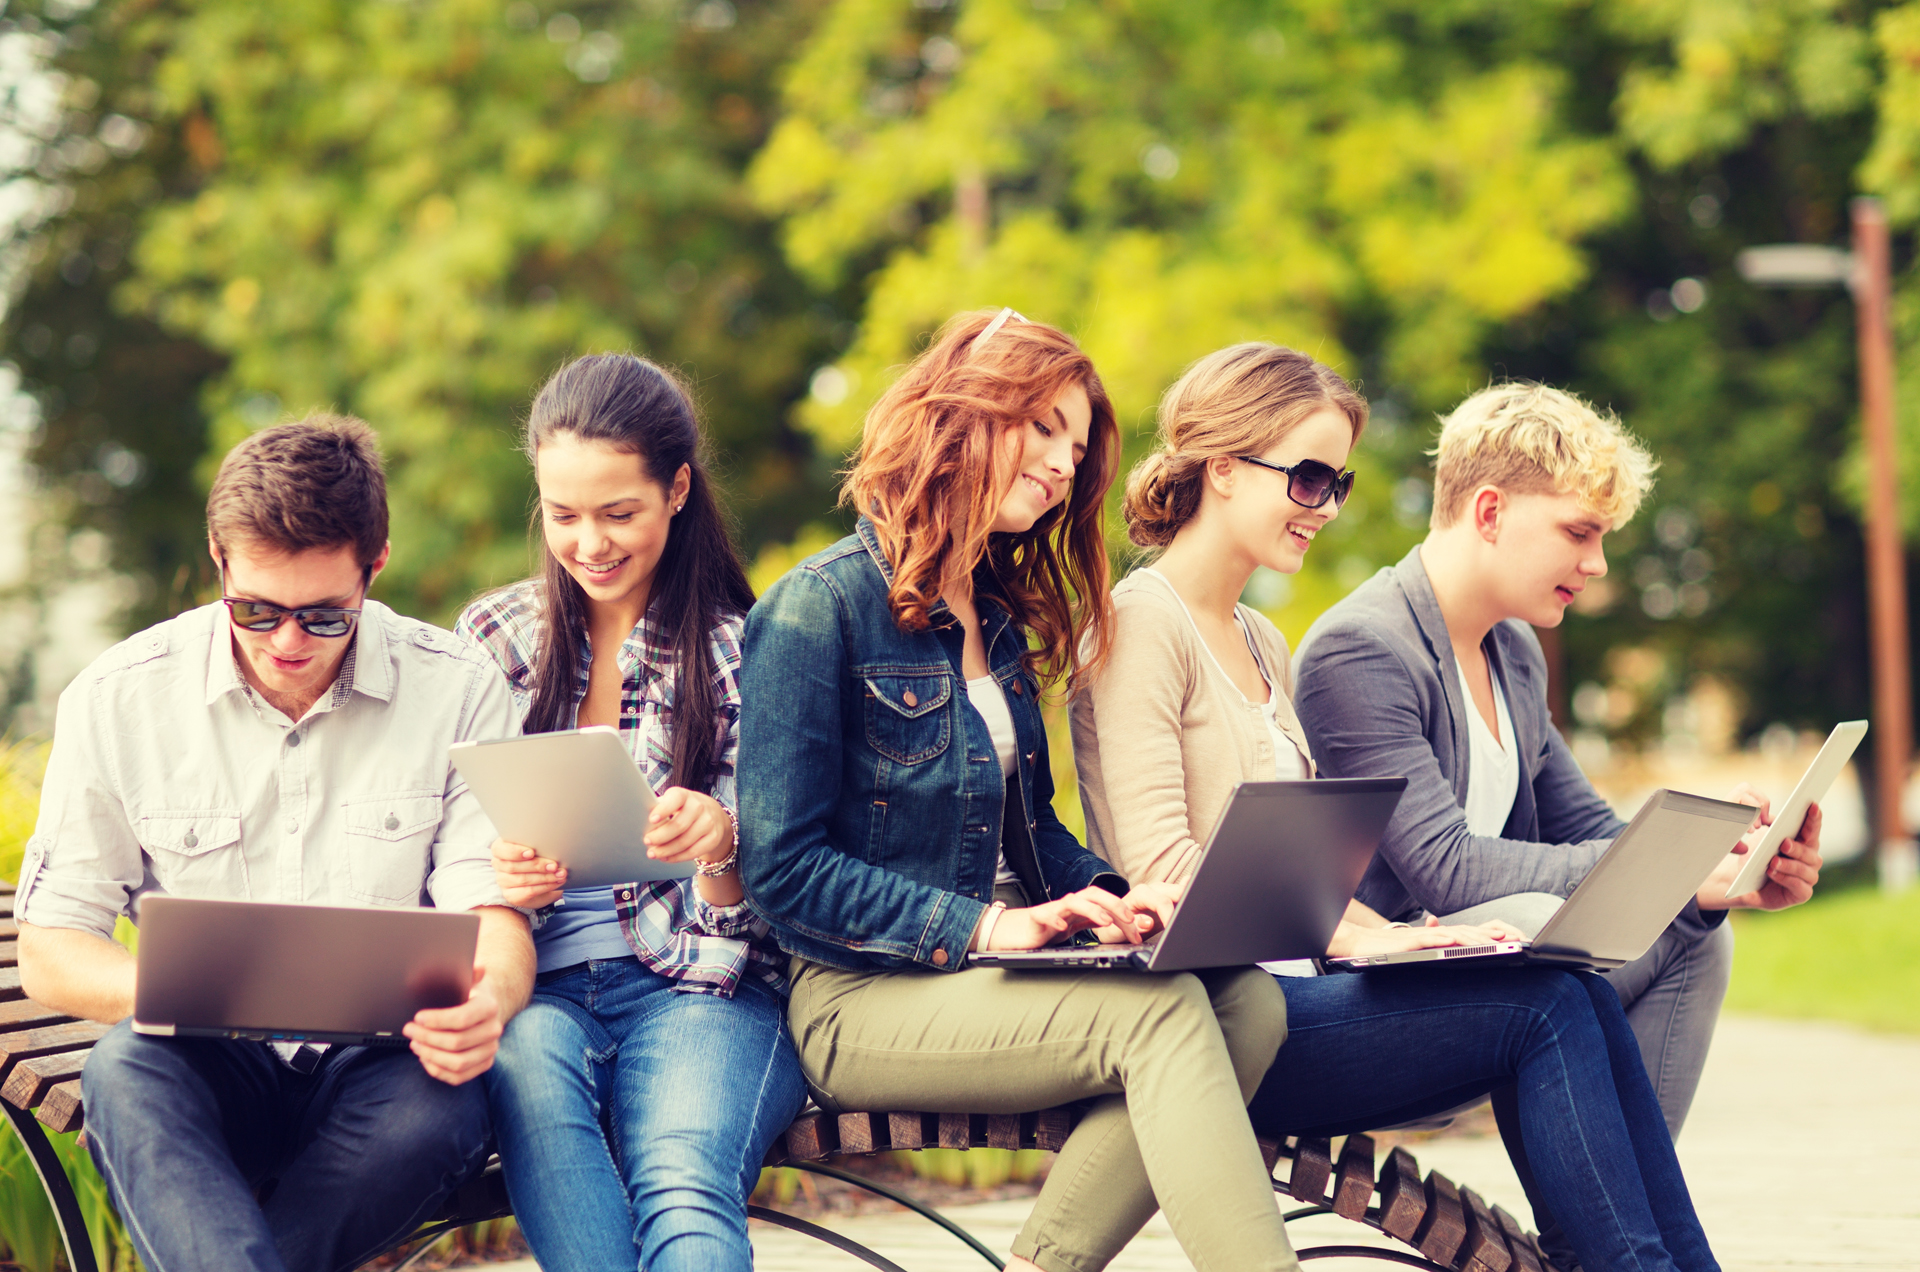 Group of young adults sitting in park all using different mobile devices and laptops